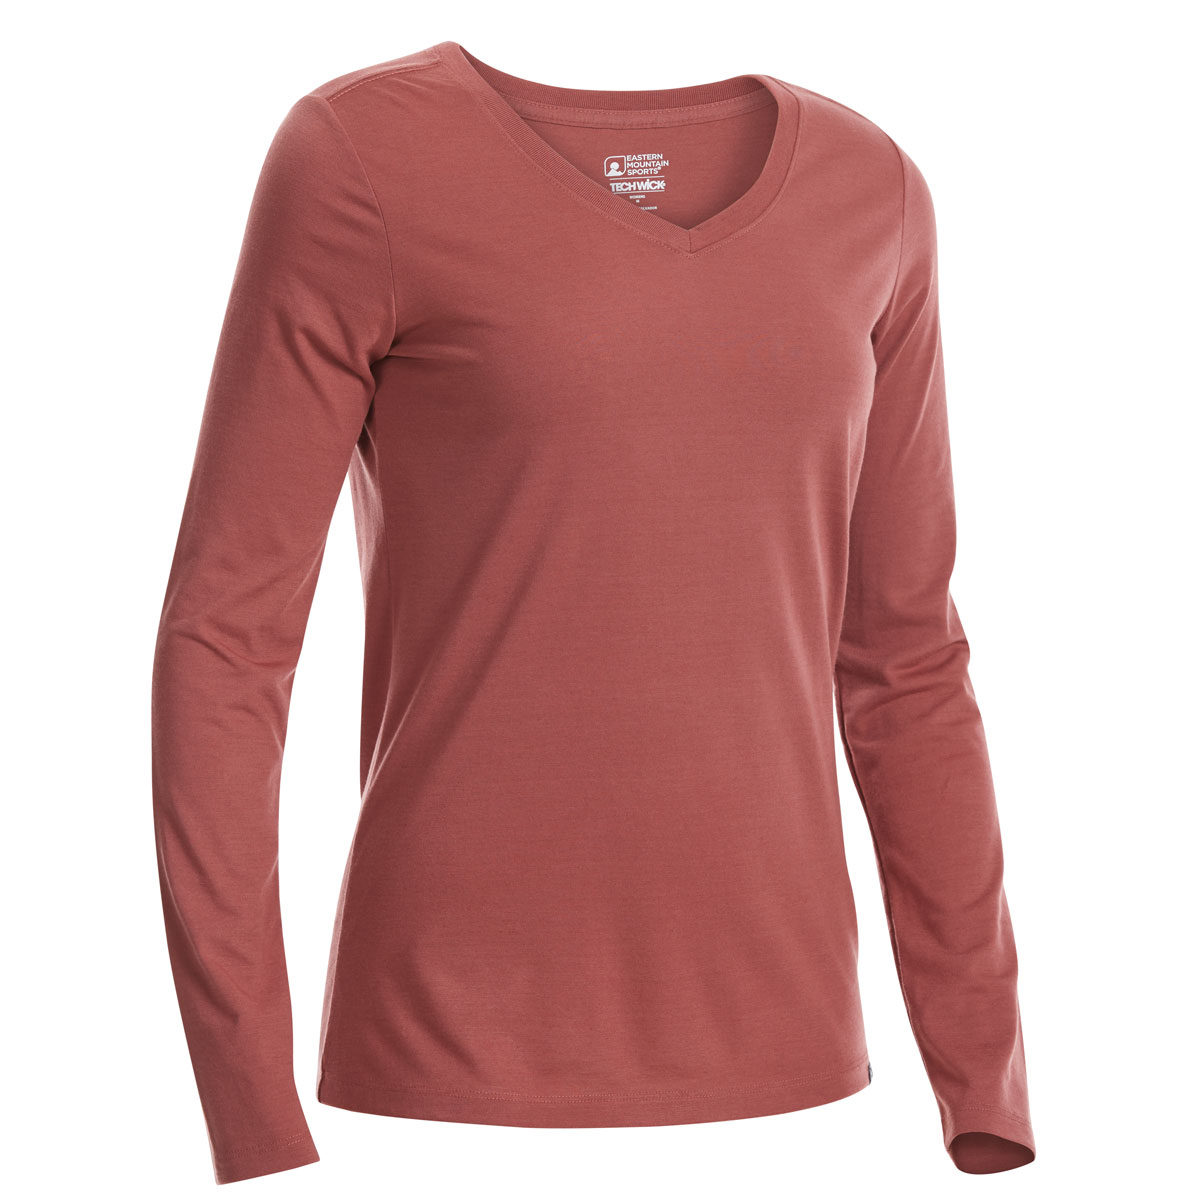 Ems Women's Techwick Vital V-Neck Long-Sleeve Tee - Red, XS